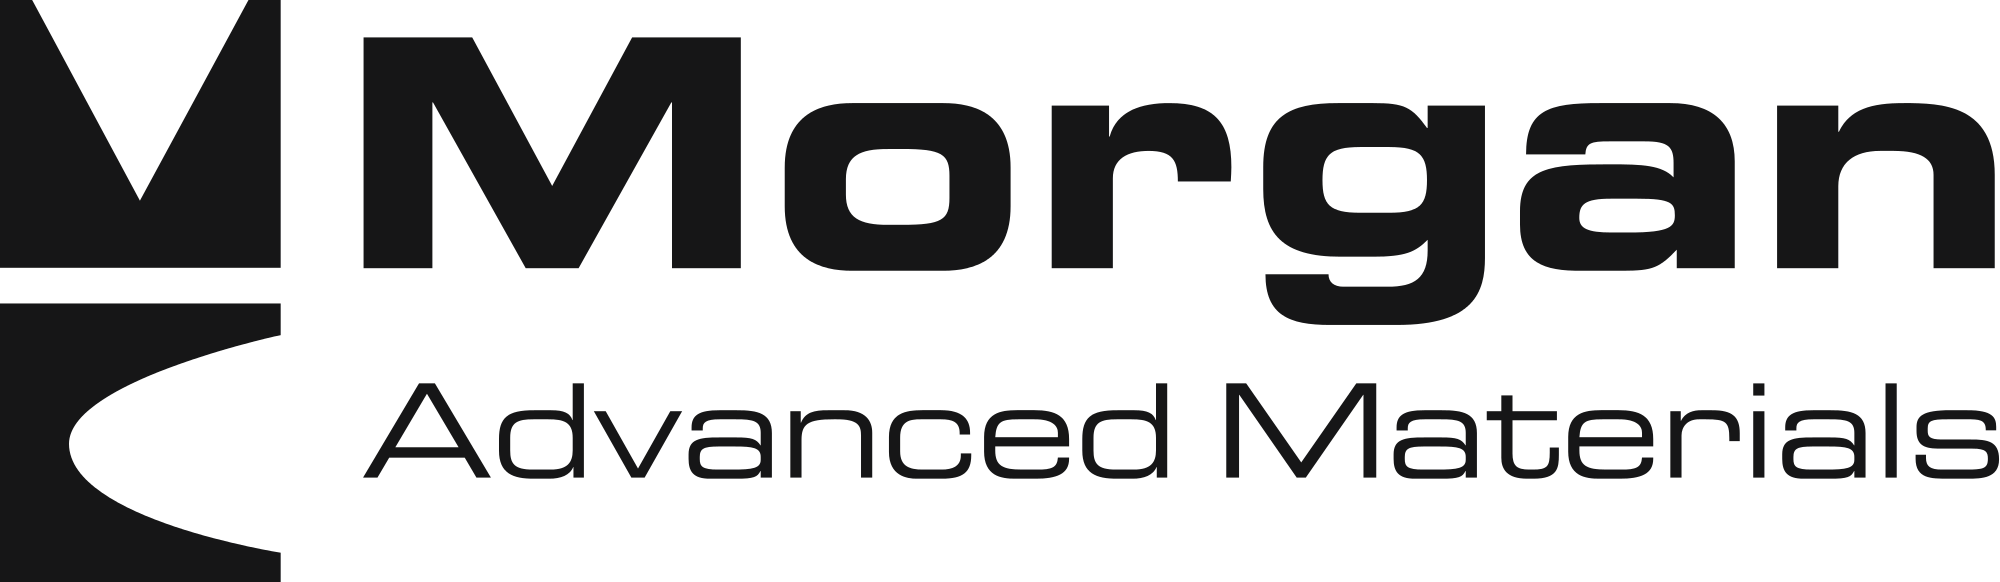 Morgan Advanced Materials - Fire Protection